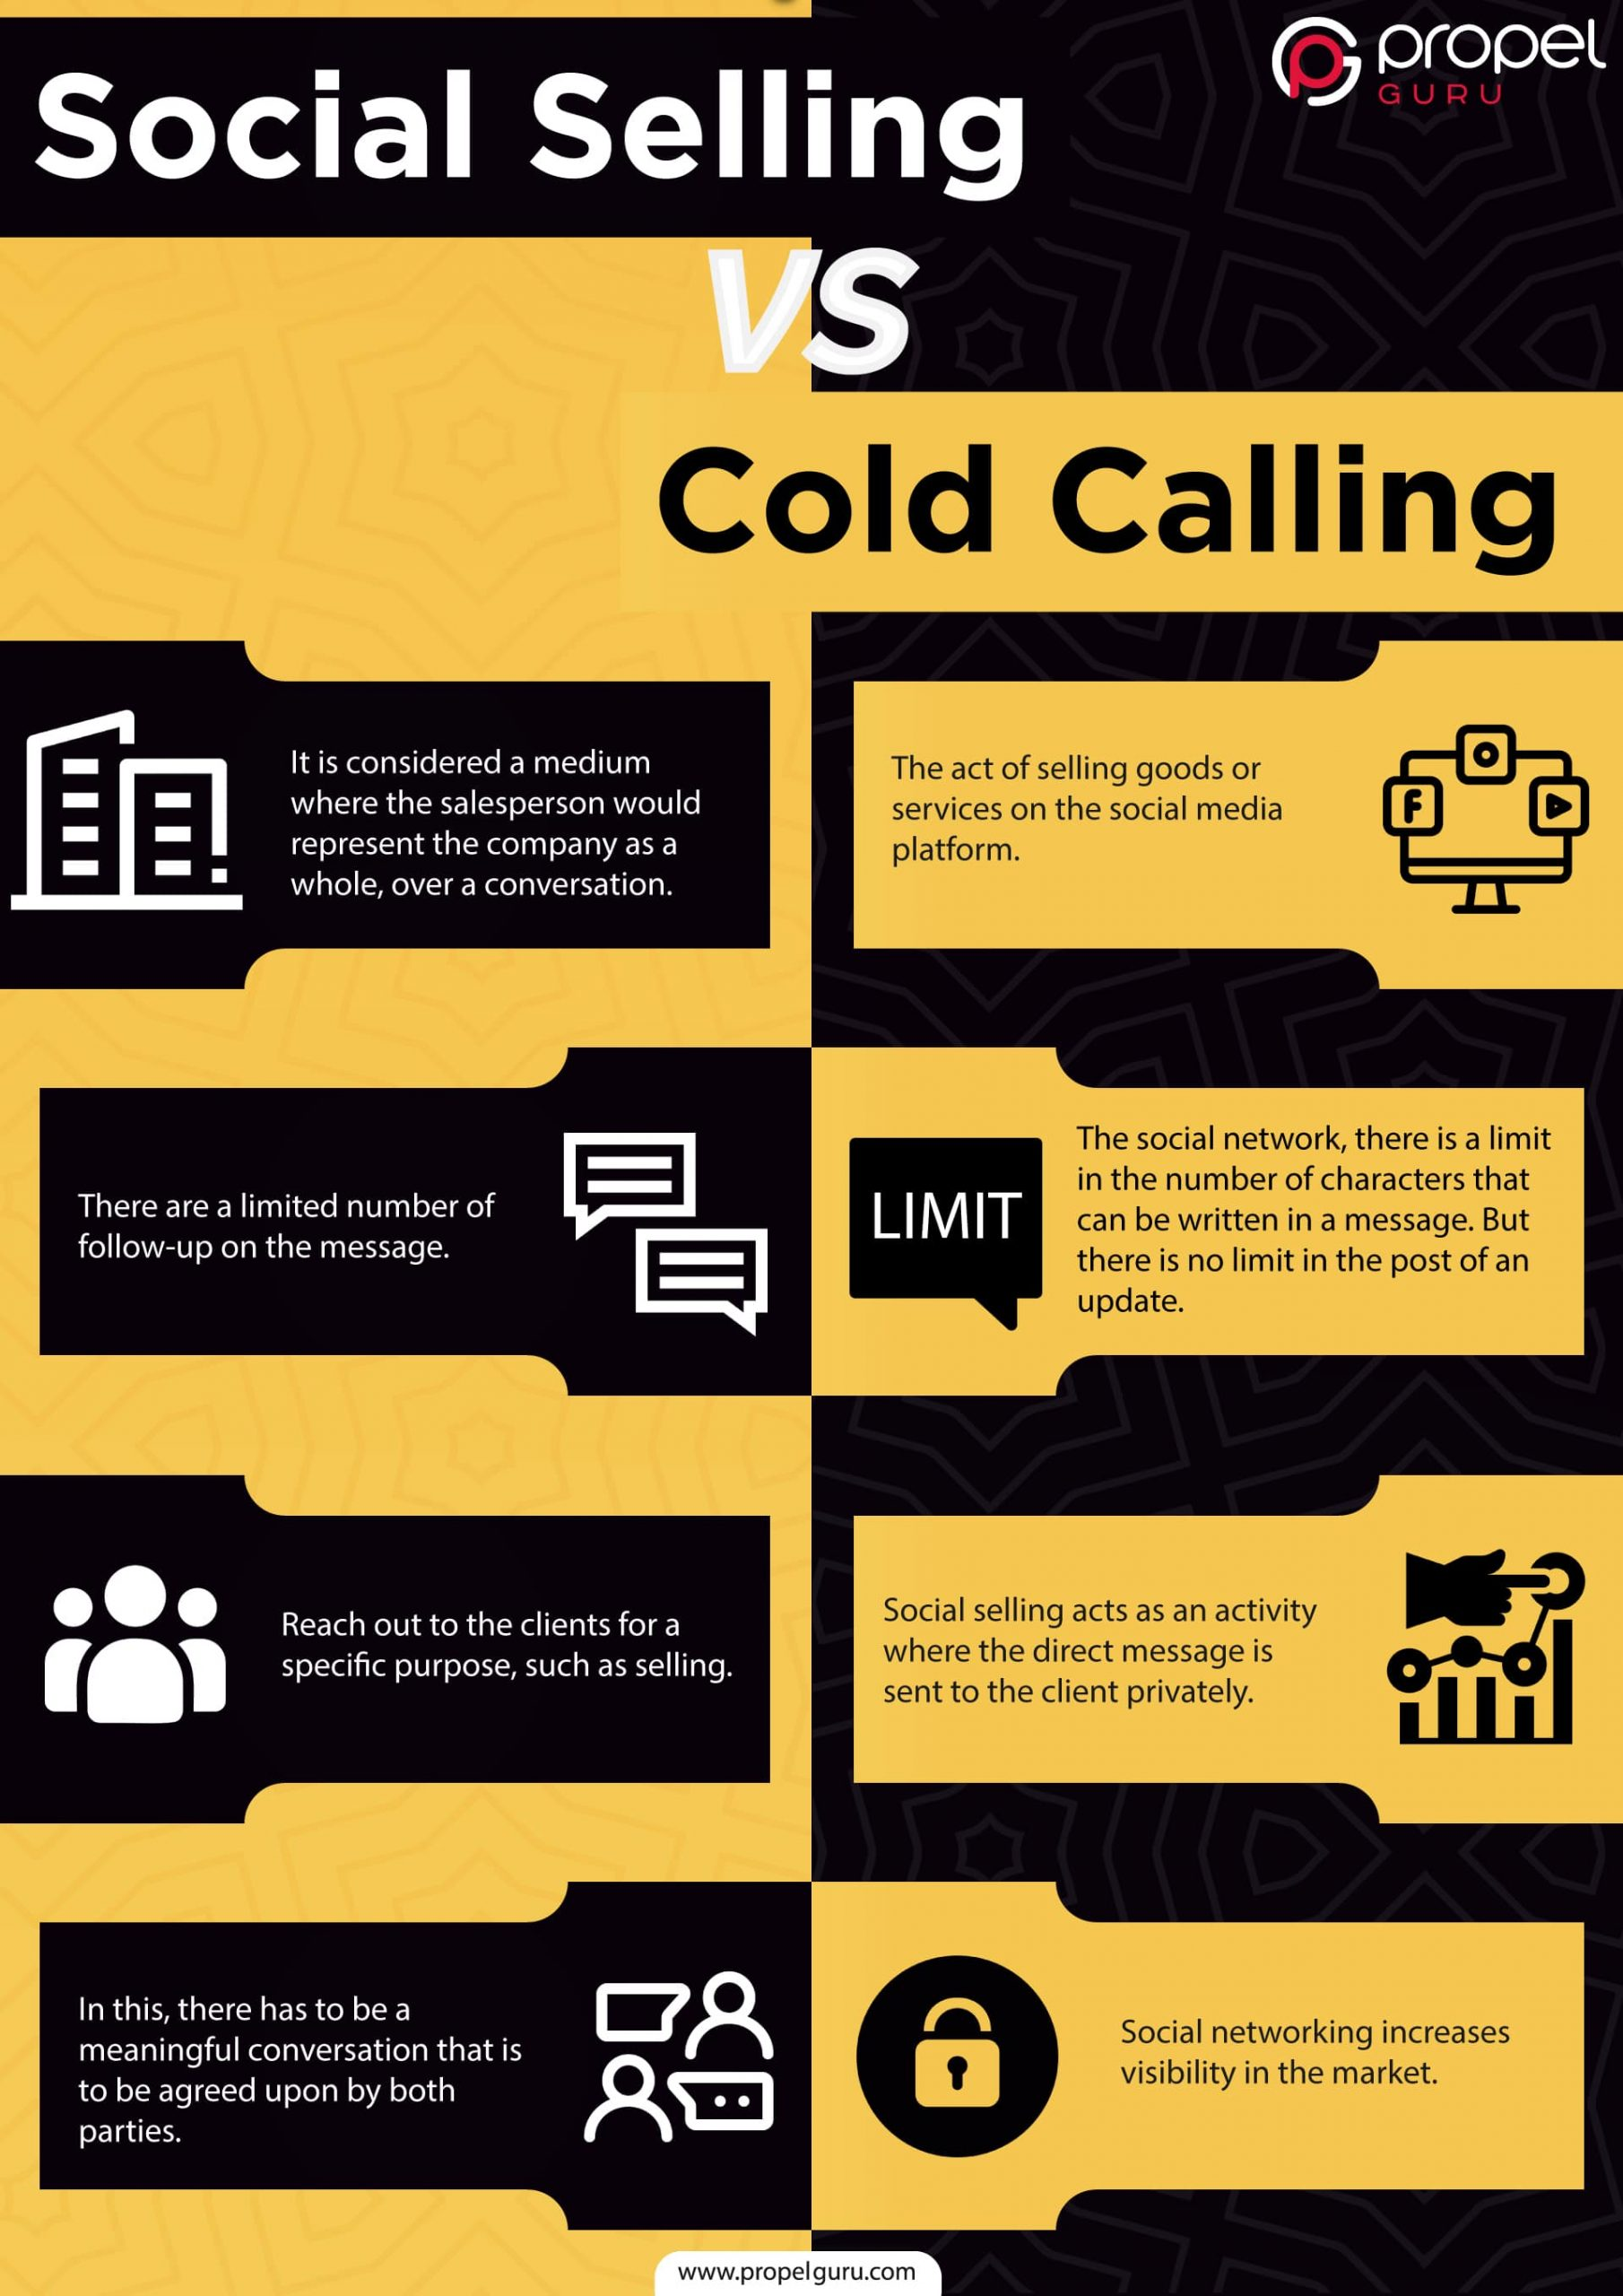 Cold Calling vs. Social Selling